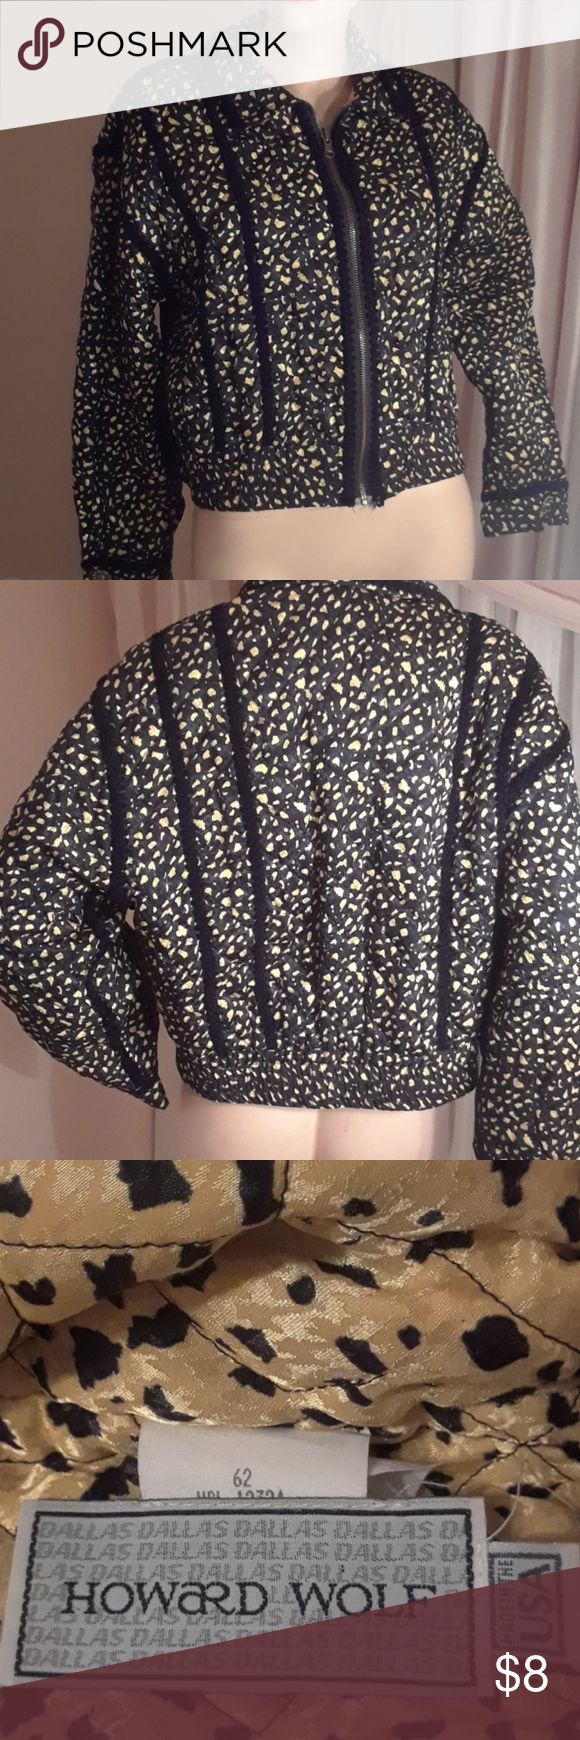 Vintage Howard Wolf of Dallas Jacket Black with gold. Lining is reverse colors. Gorgeous. Like new. Howard Wolf Dallas Jackets & Coats